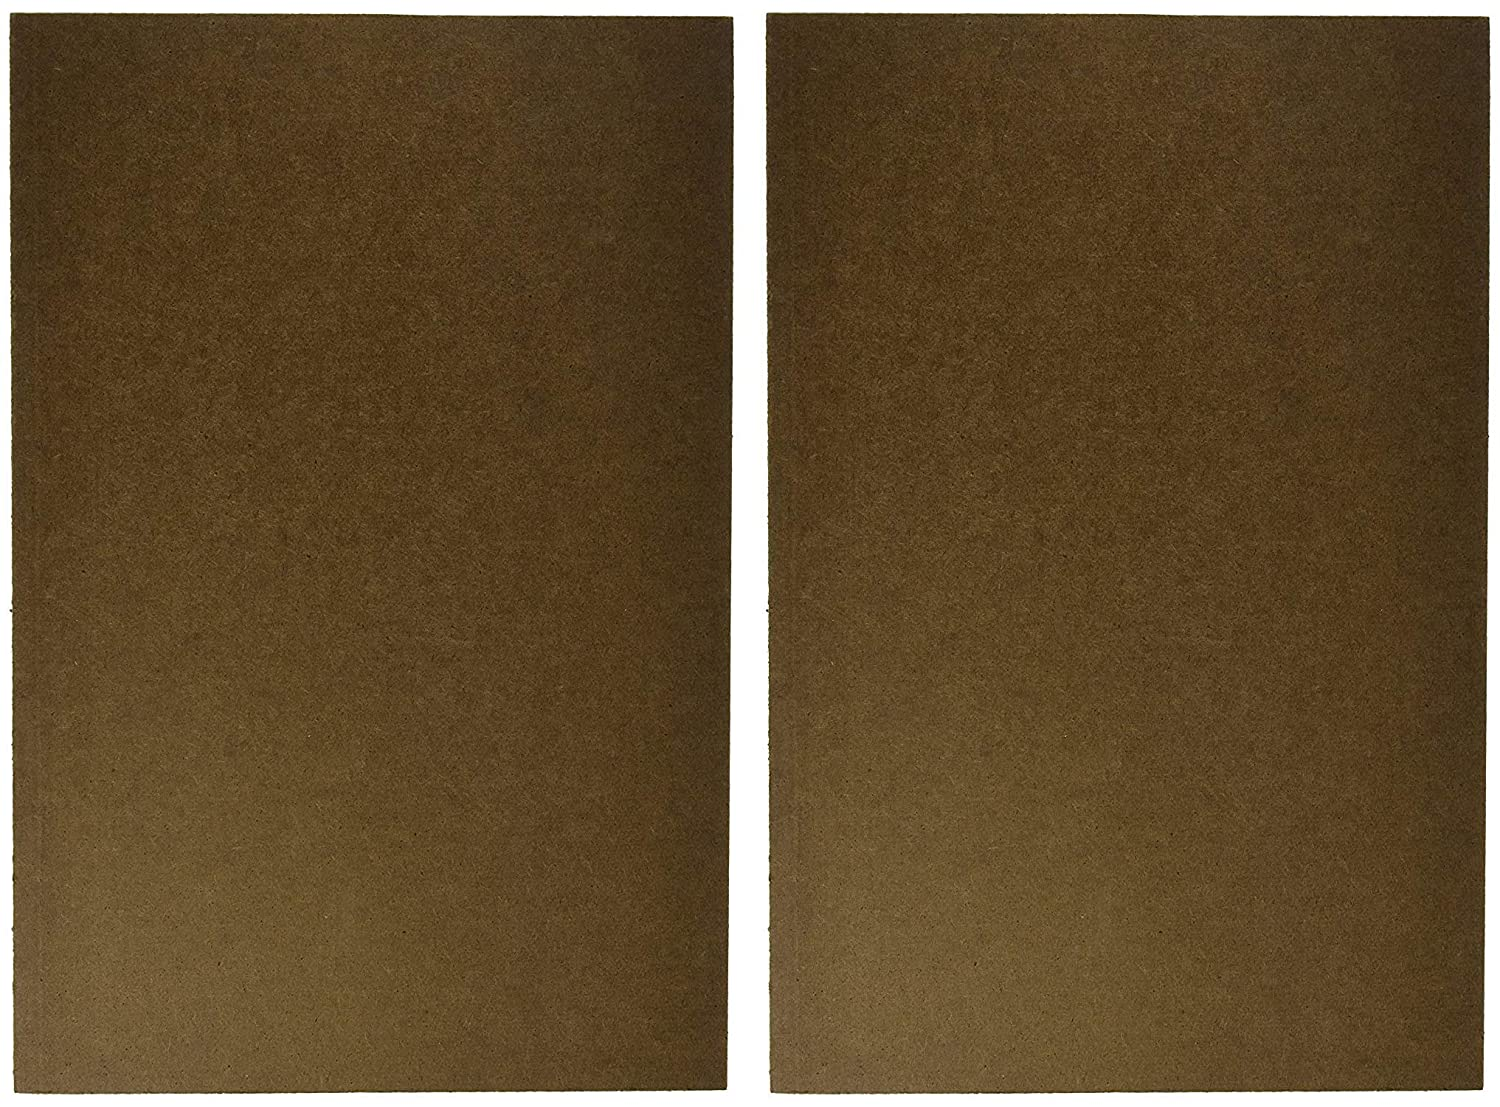 Sax Sketch and Draw Board, 12 x 18 inches, Brown (2-Pack (12 x 18 x 1/4 in))